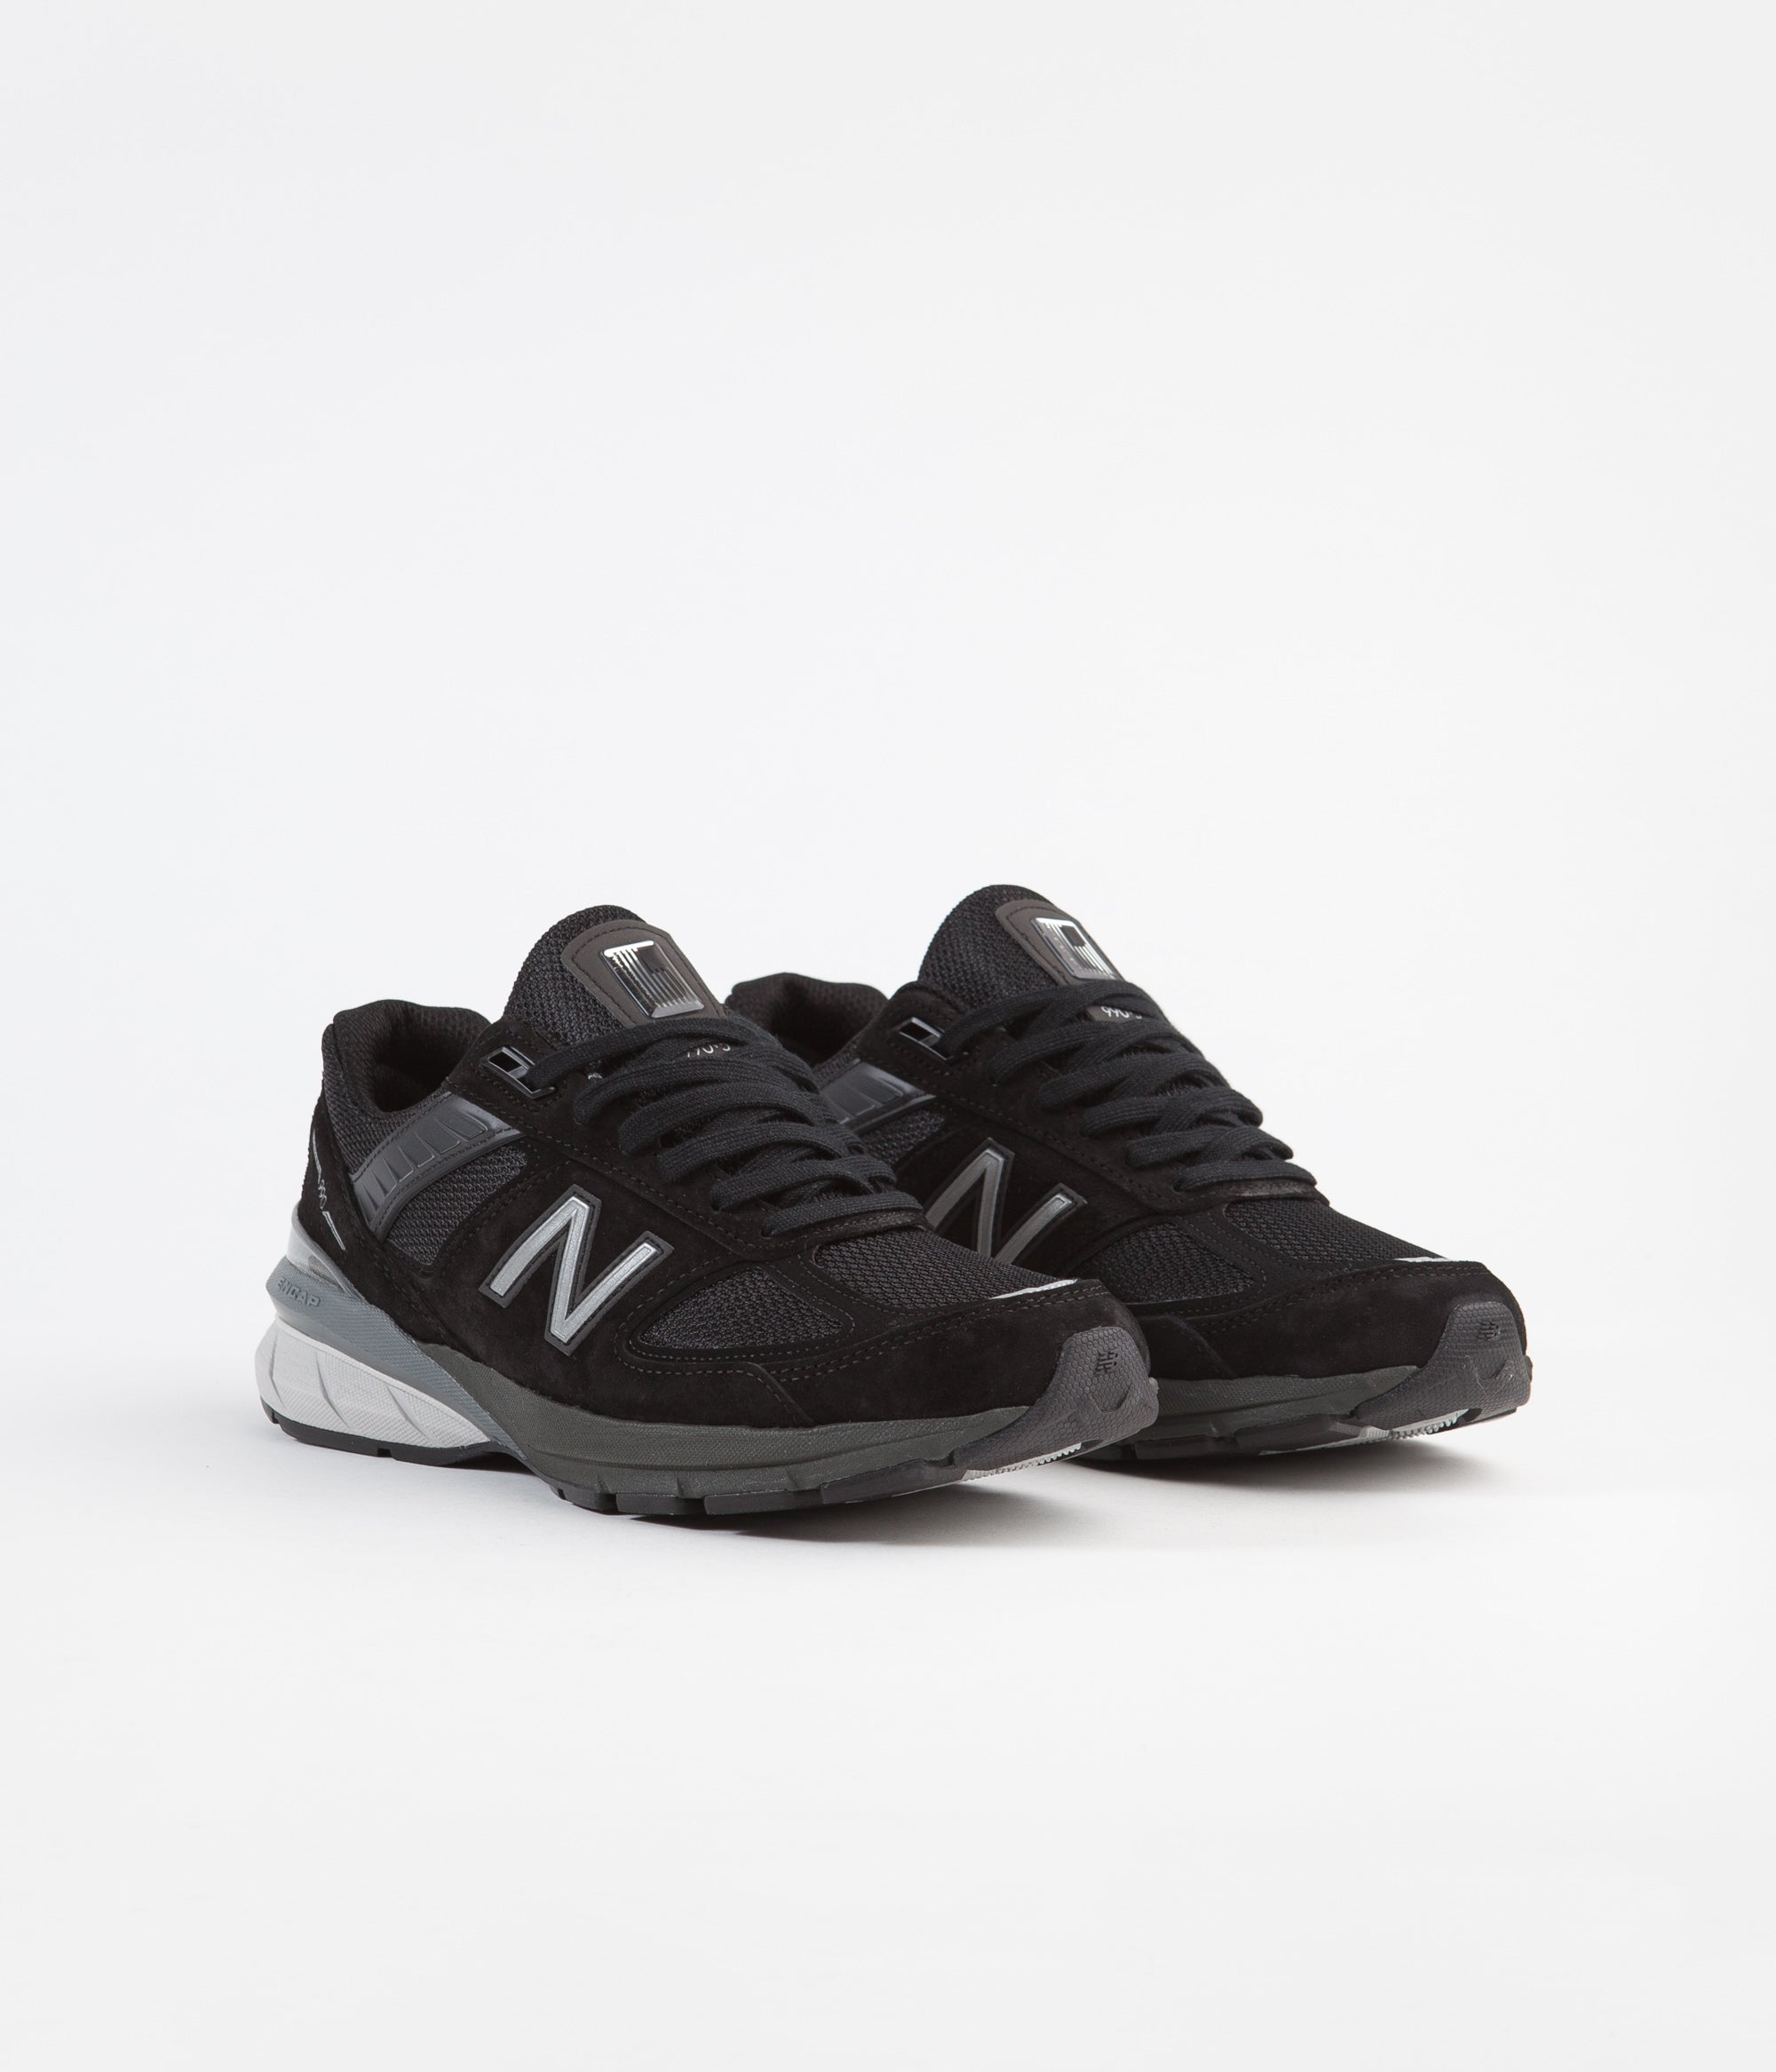 the latest 0147b 2fde0 ... New Balance 990 v5 Made In US Shoes - Black   Silver ...